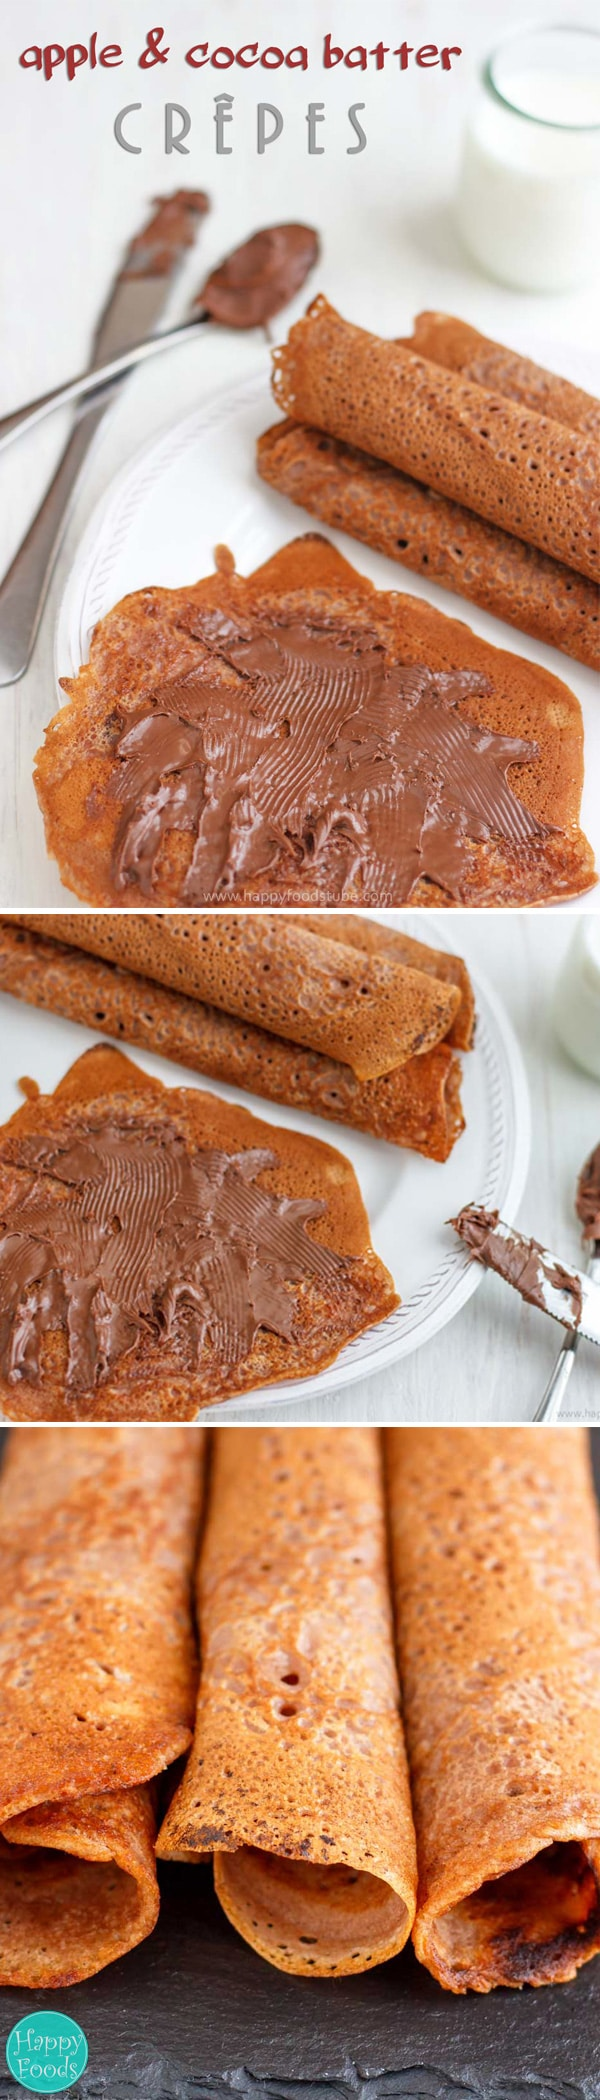 Apple & Cocoa Batter Crepes - Super delicious crepes / pancake recipe, healthy ingredients, pancake tuesday, pancake day, vegetarian | happyfoodstube.com